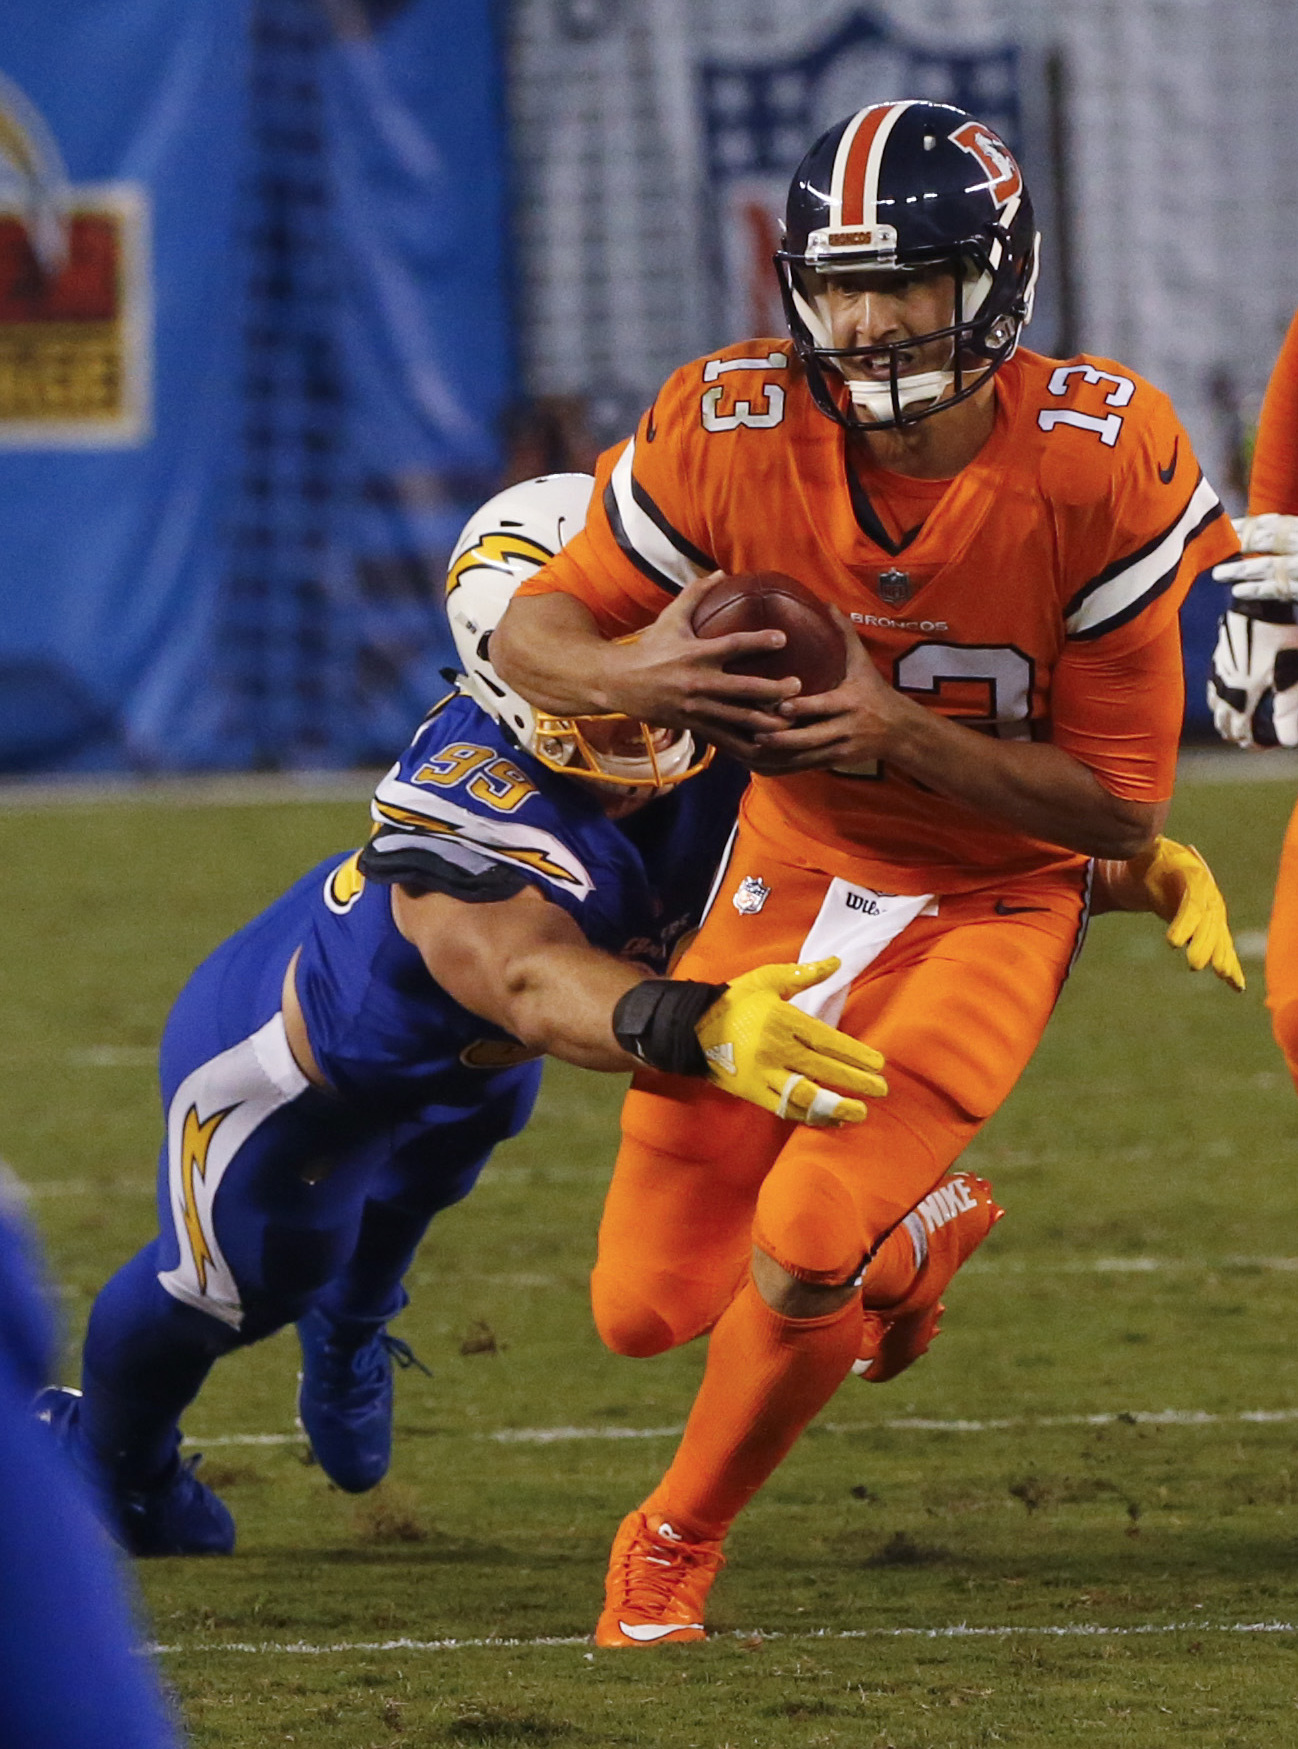 Denver Broncos quarterback Trevor Siemian (13) is brought down by San Diego Chargers defensive end Joey Bosa during the first half of an NFL football game Thursday, Oct. 13, 2016, in San Diego. (AP Photo/Lenny Ignelzi)